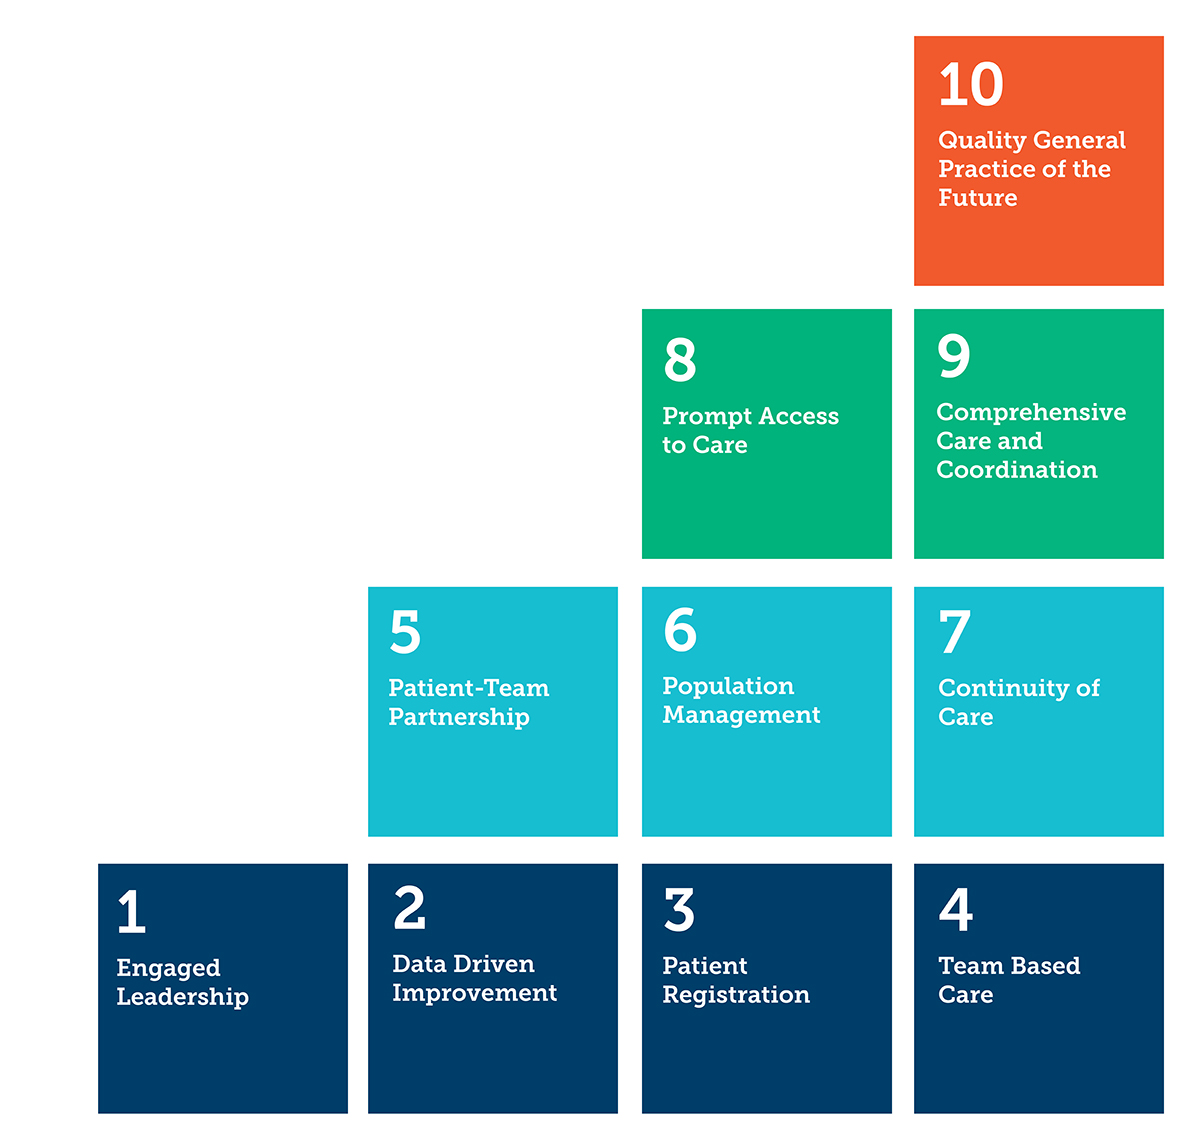 The 10 Building Blocks of High-Performing Primary Care